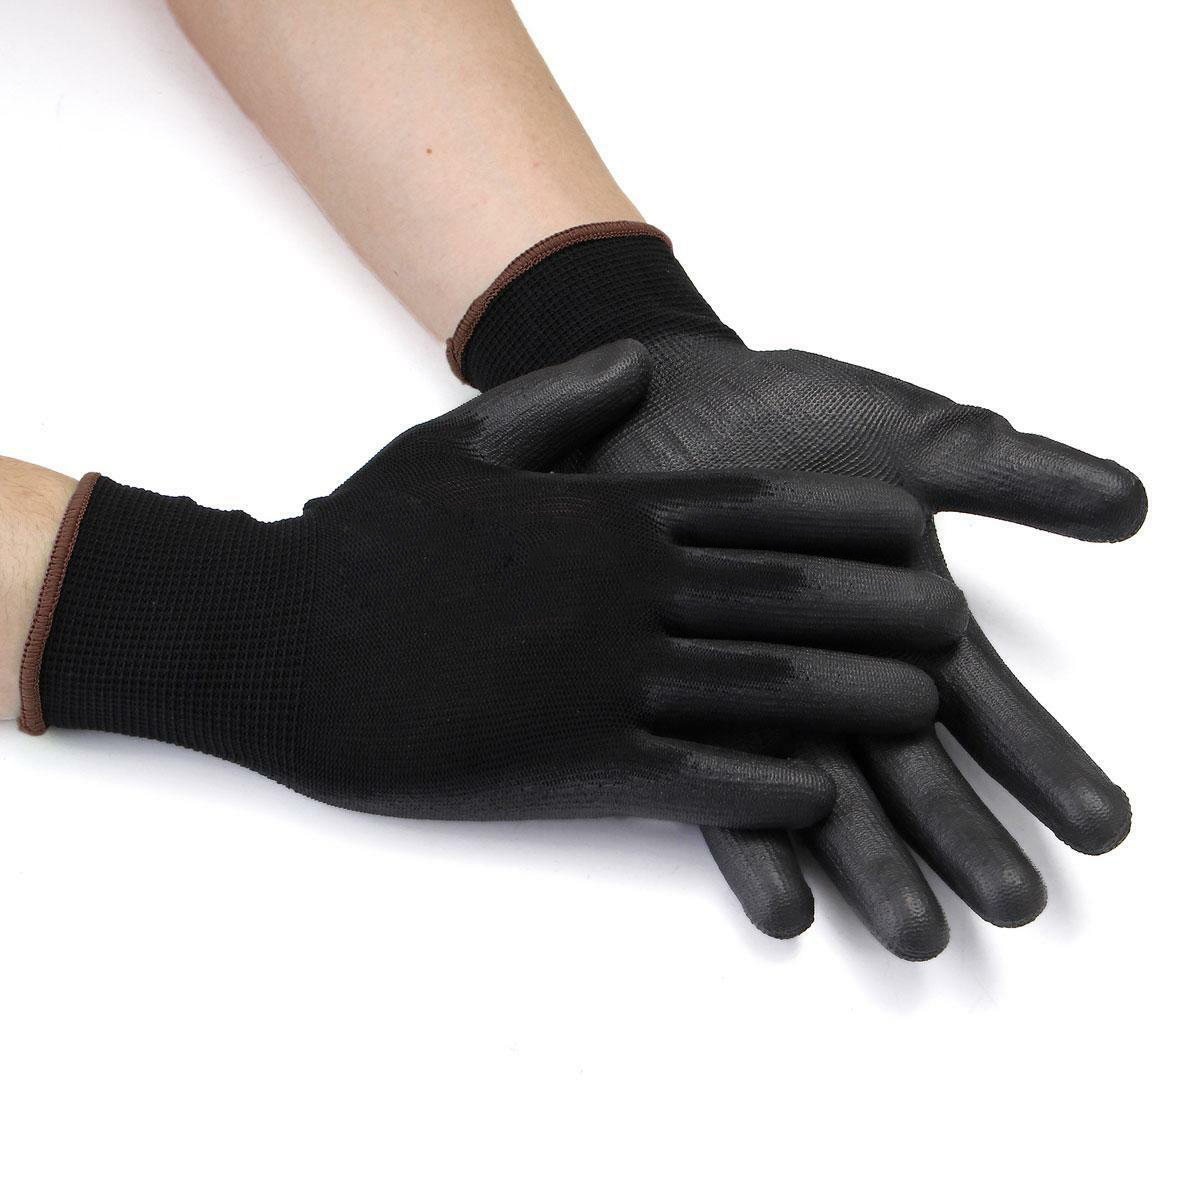 12 Pairs Black Nylon PU Safety Work Glove Builders Grip Palm Coating Warm Gloves